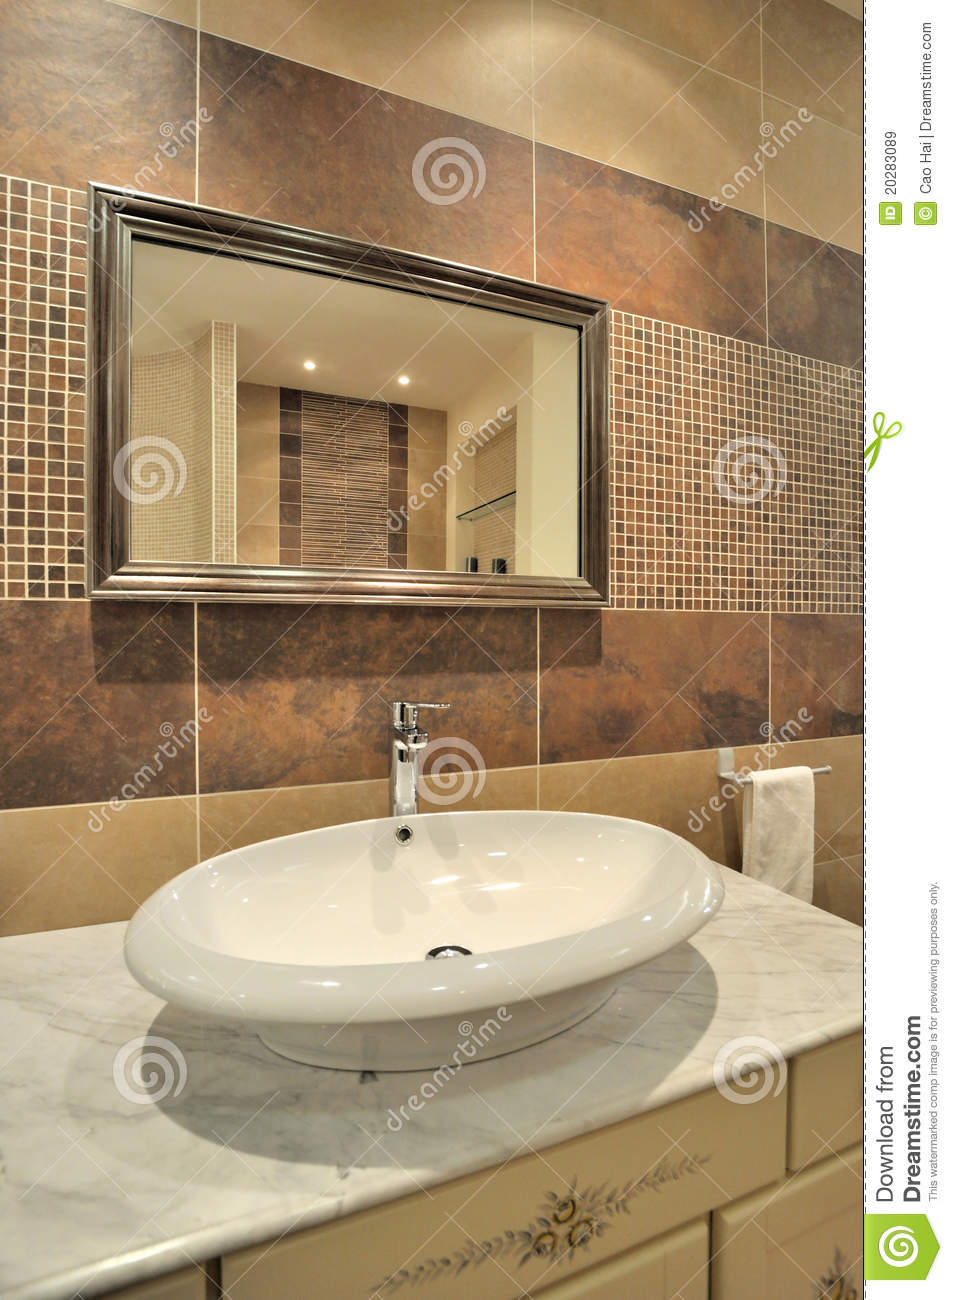 Water Closet And Mirror In Washroom